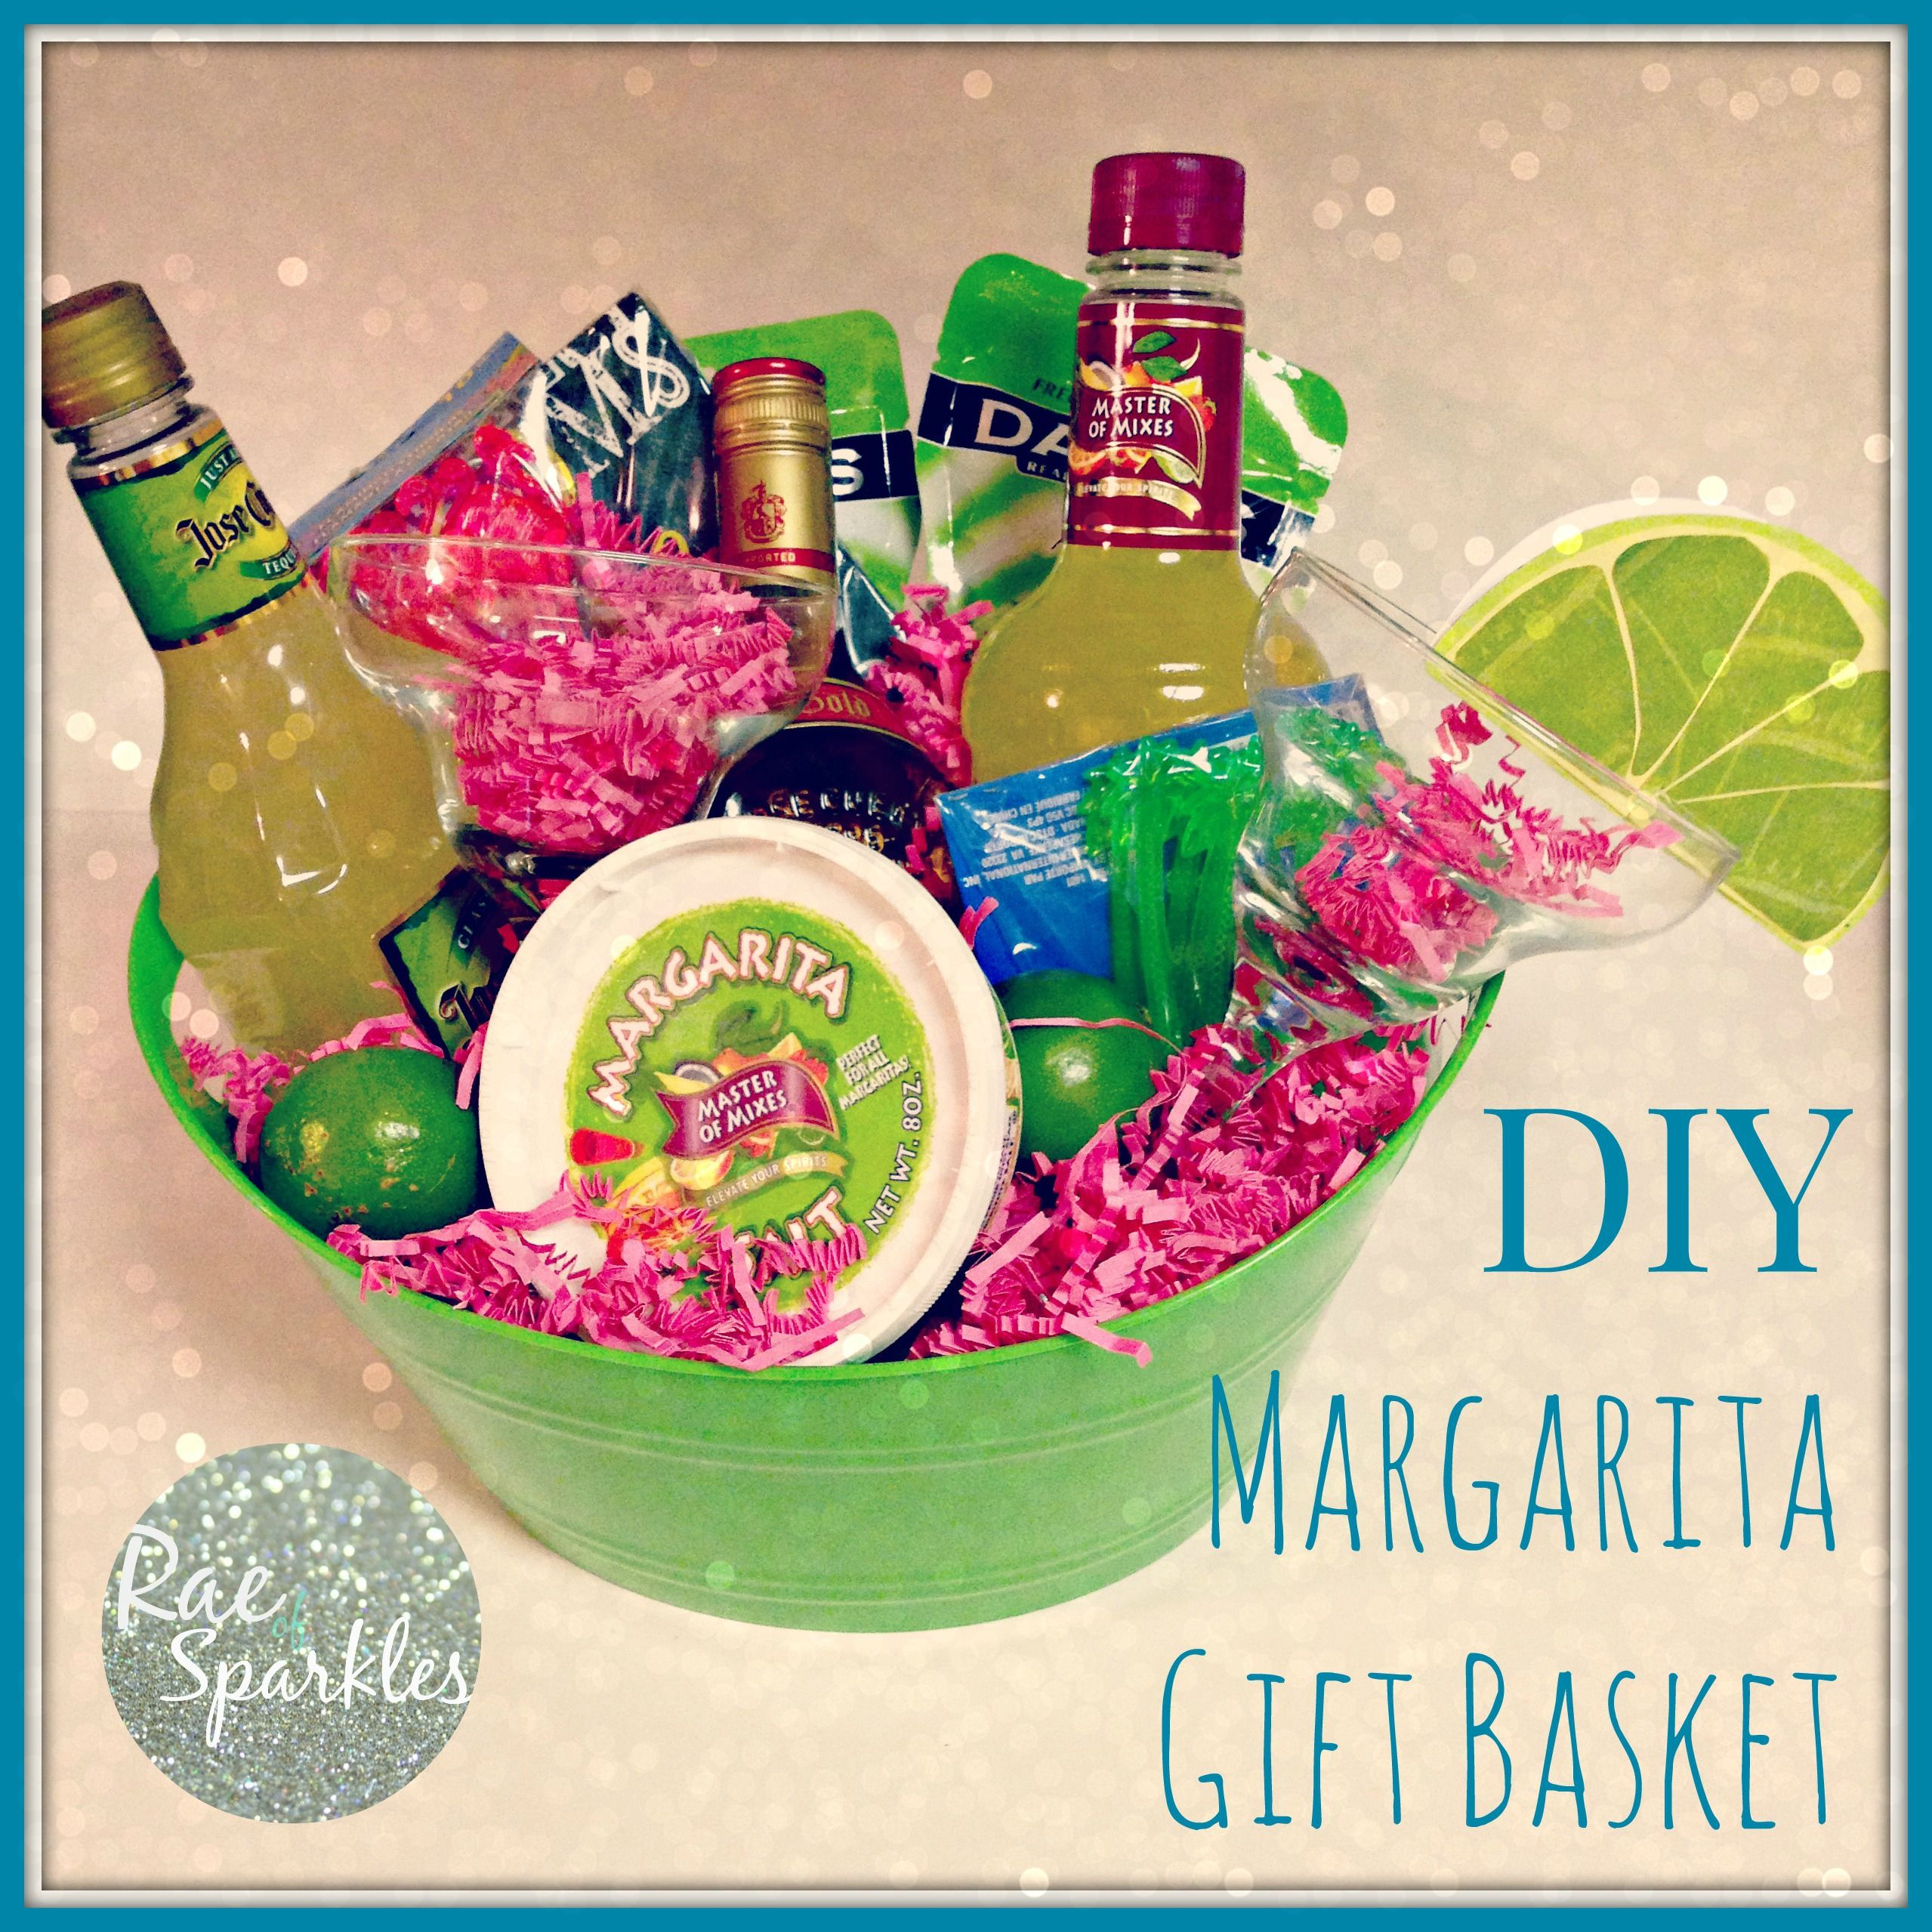 DIY Margarita Gift Basket